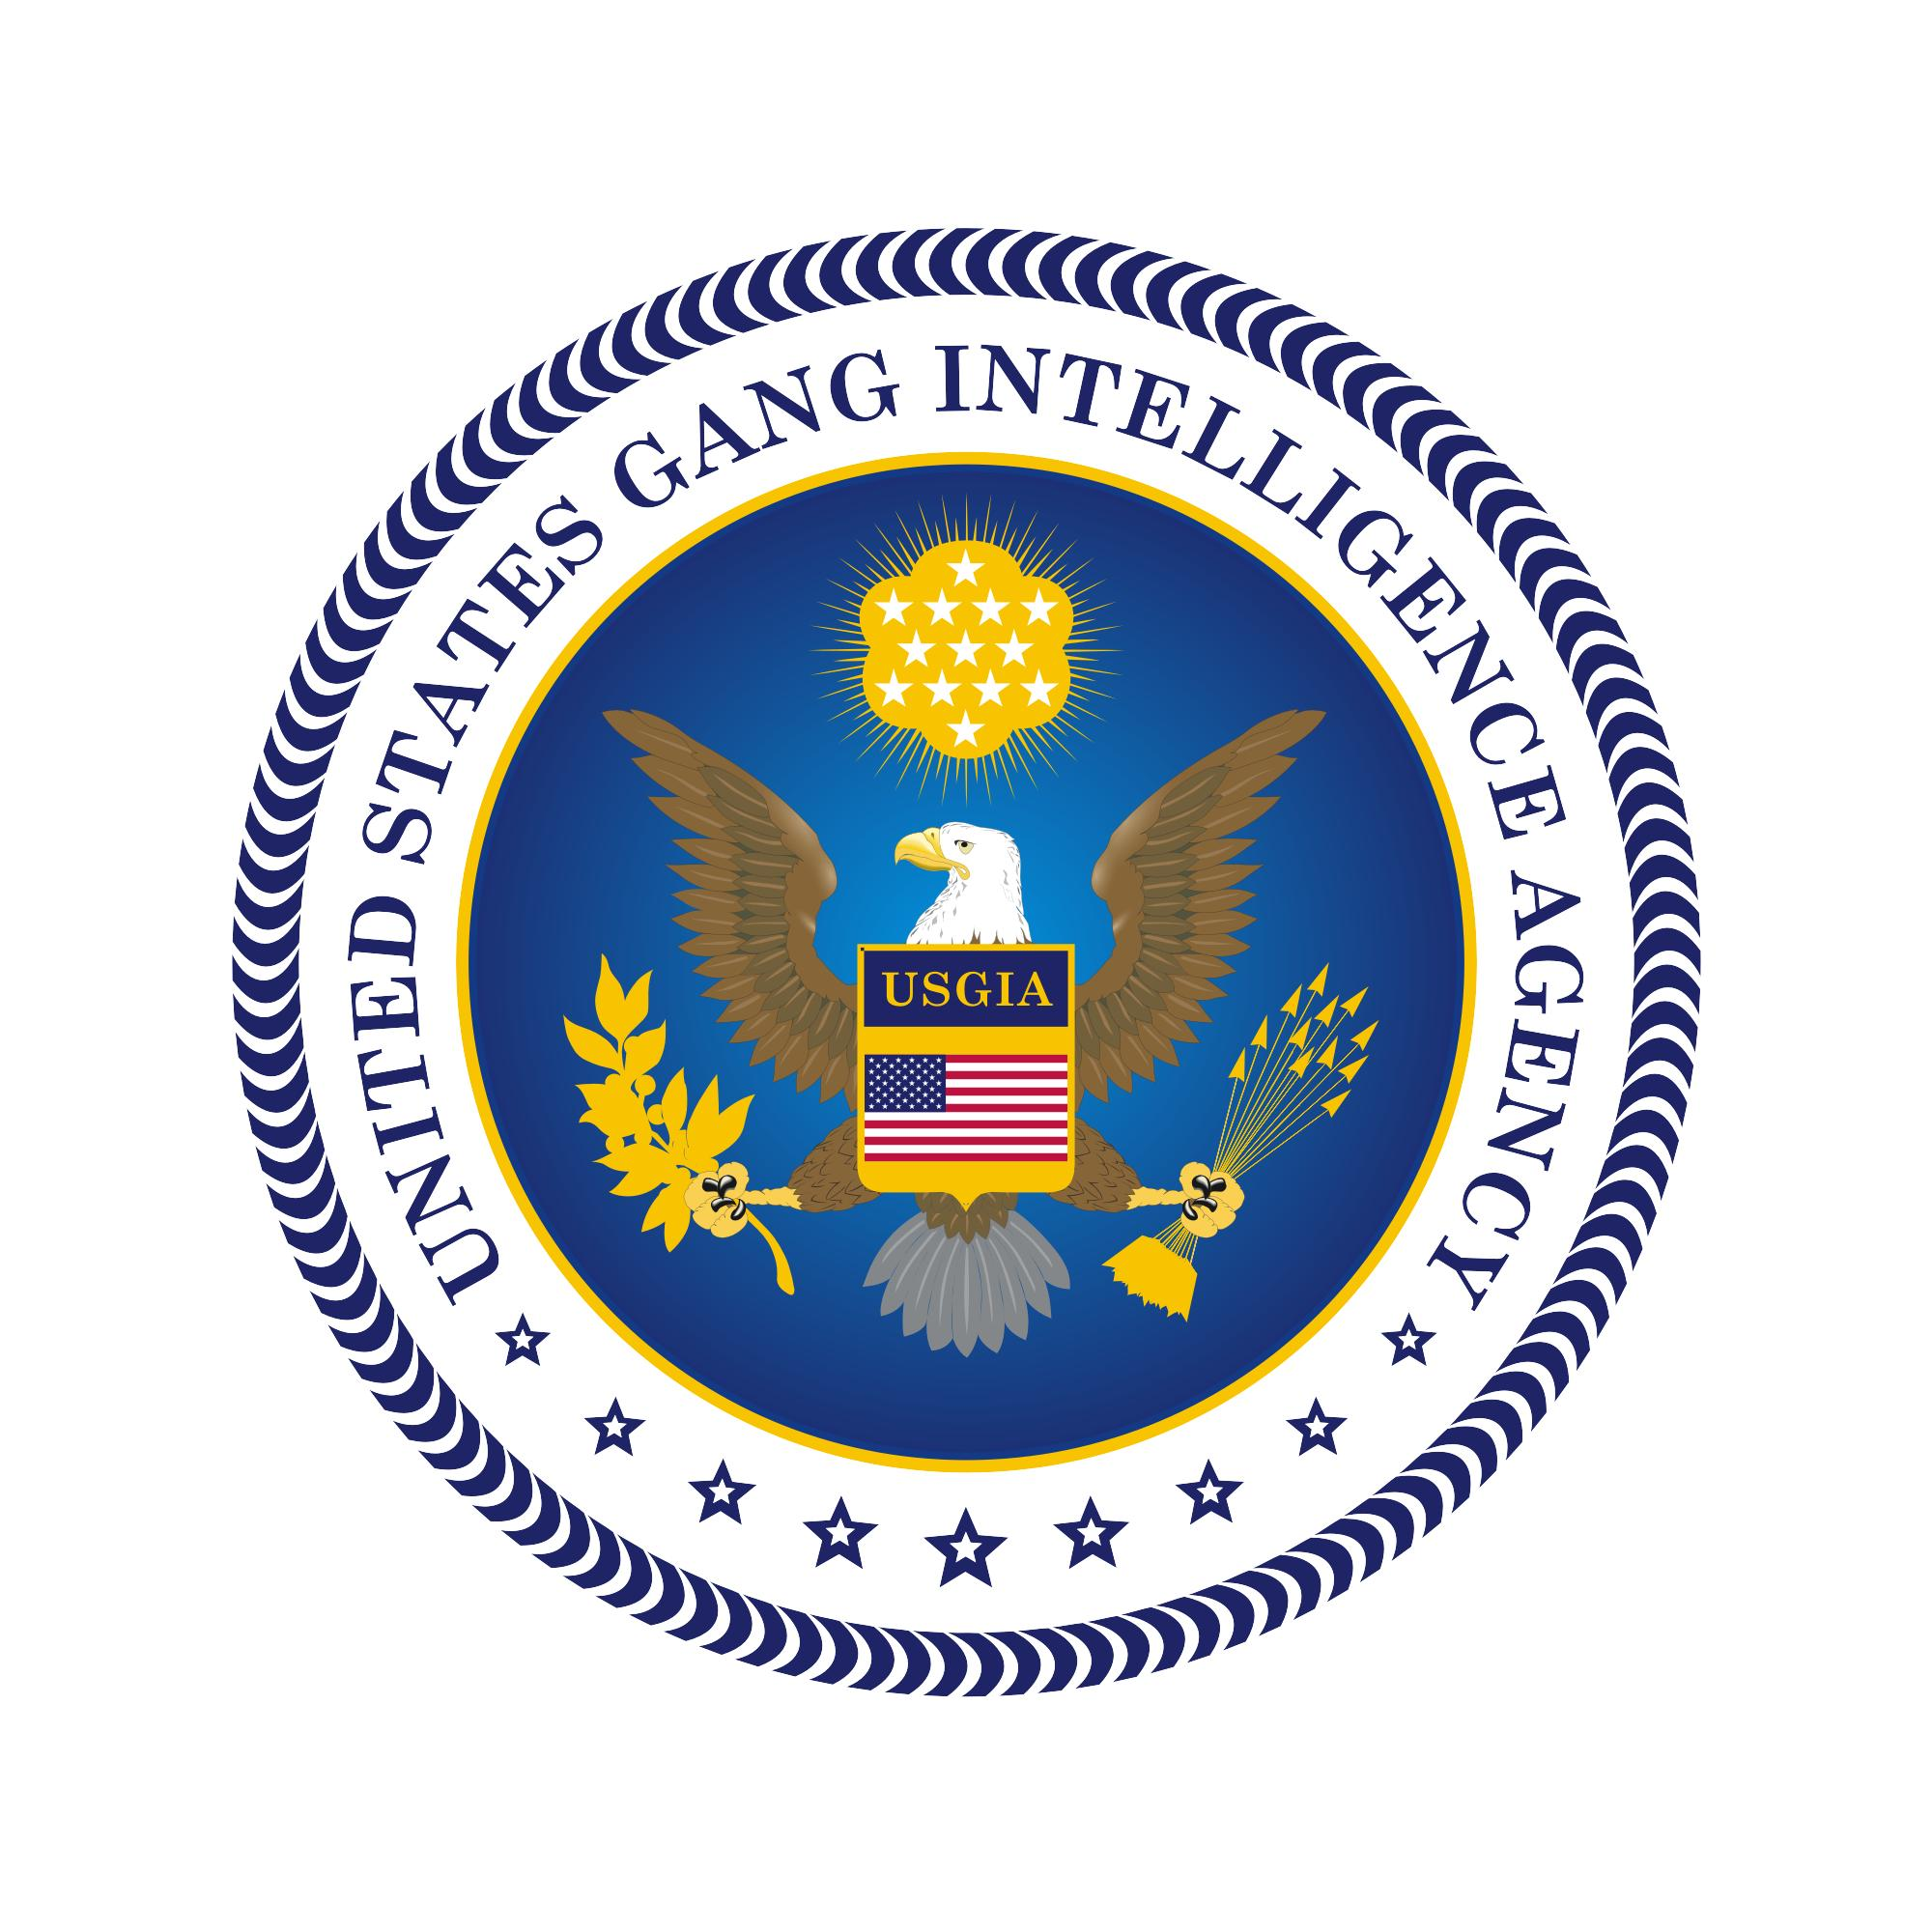 united states gang intelligence agency created to assist